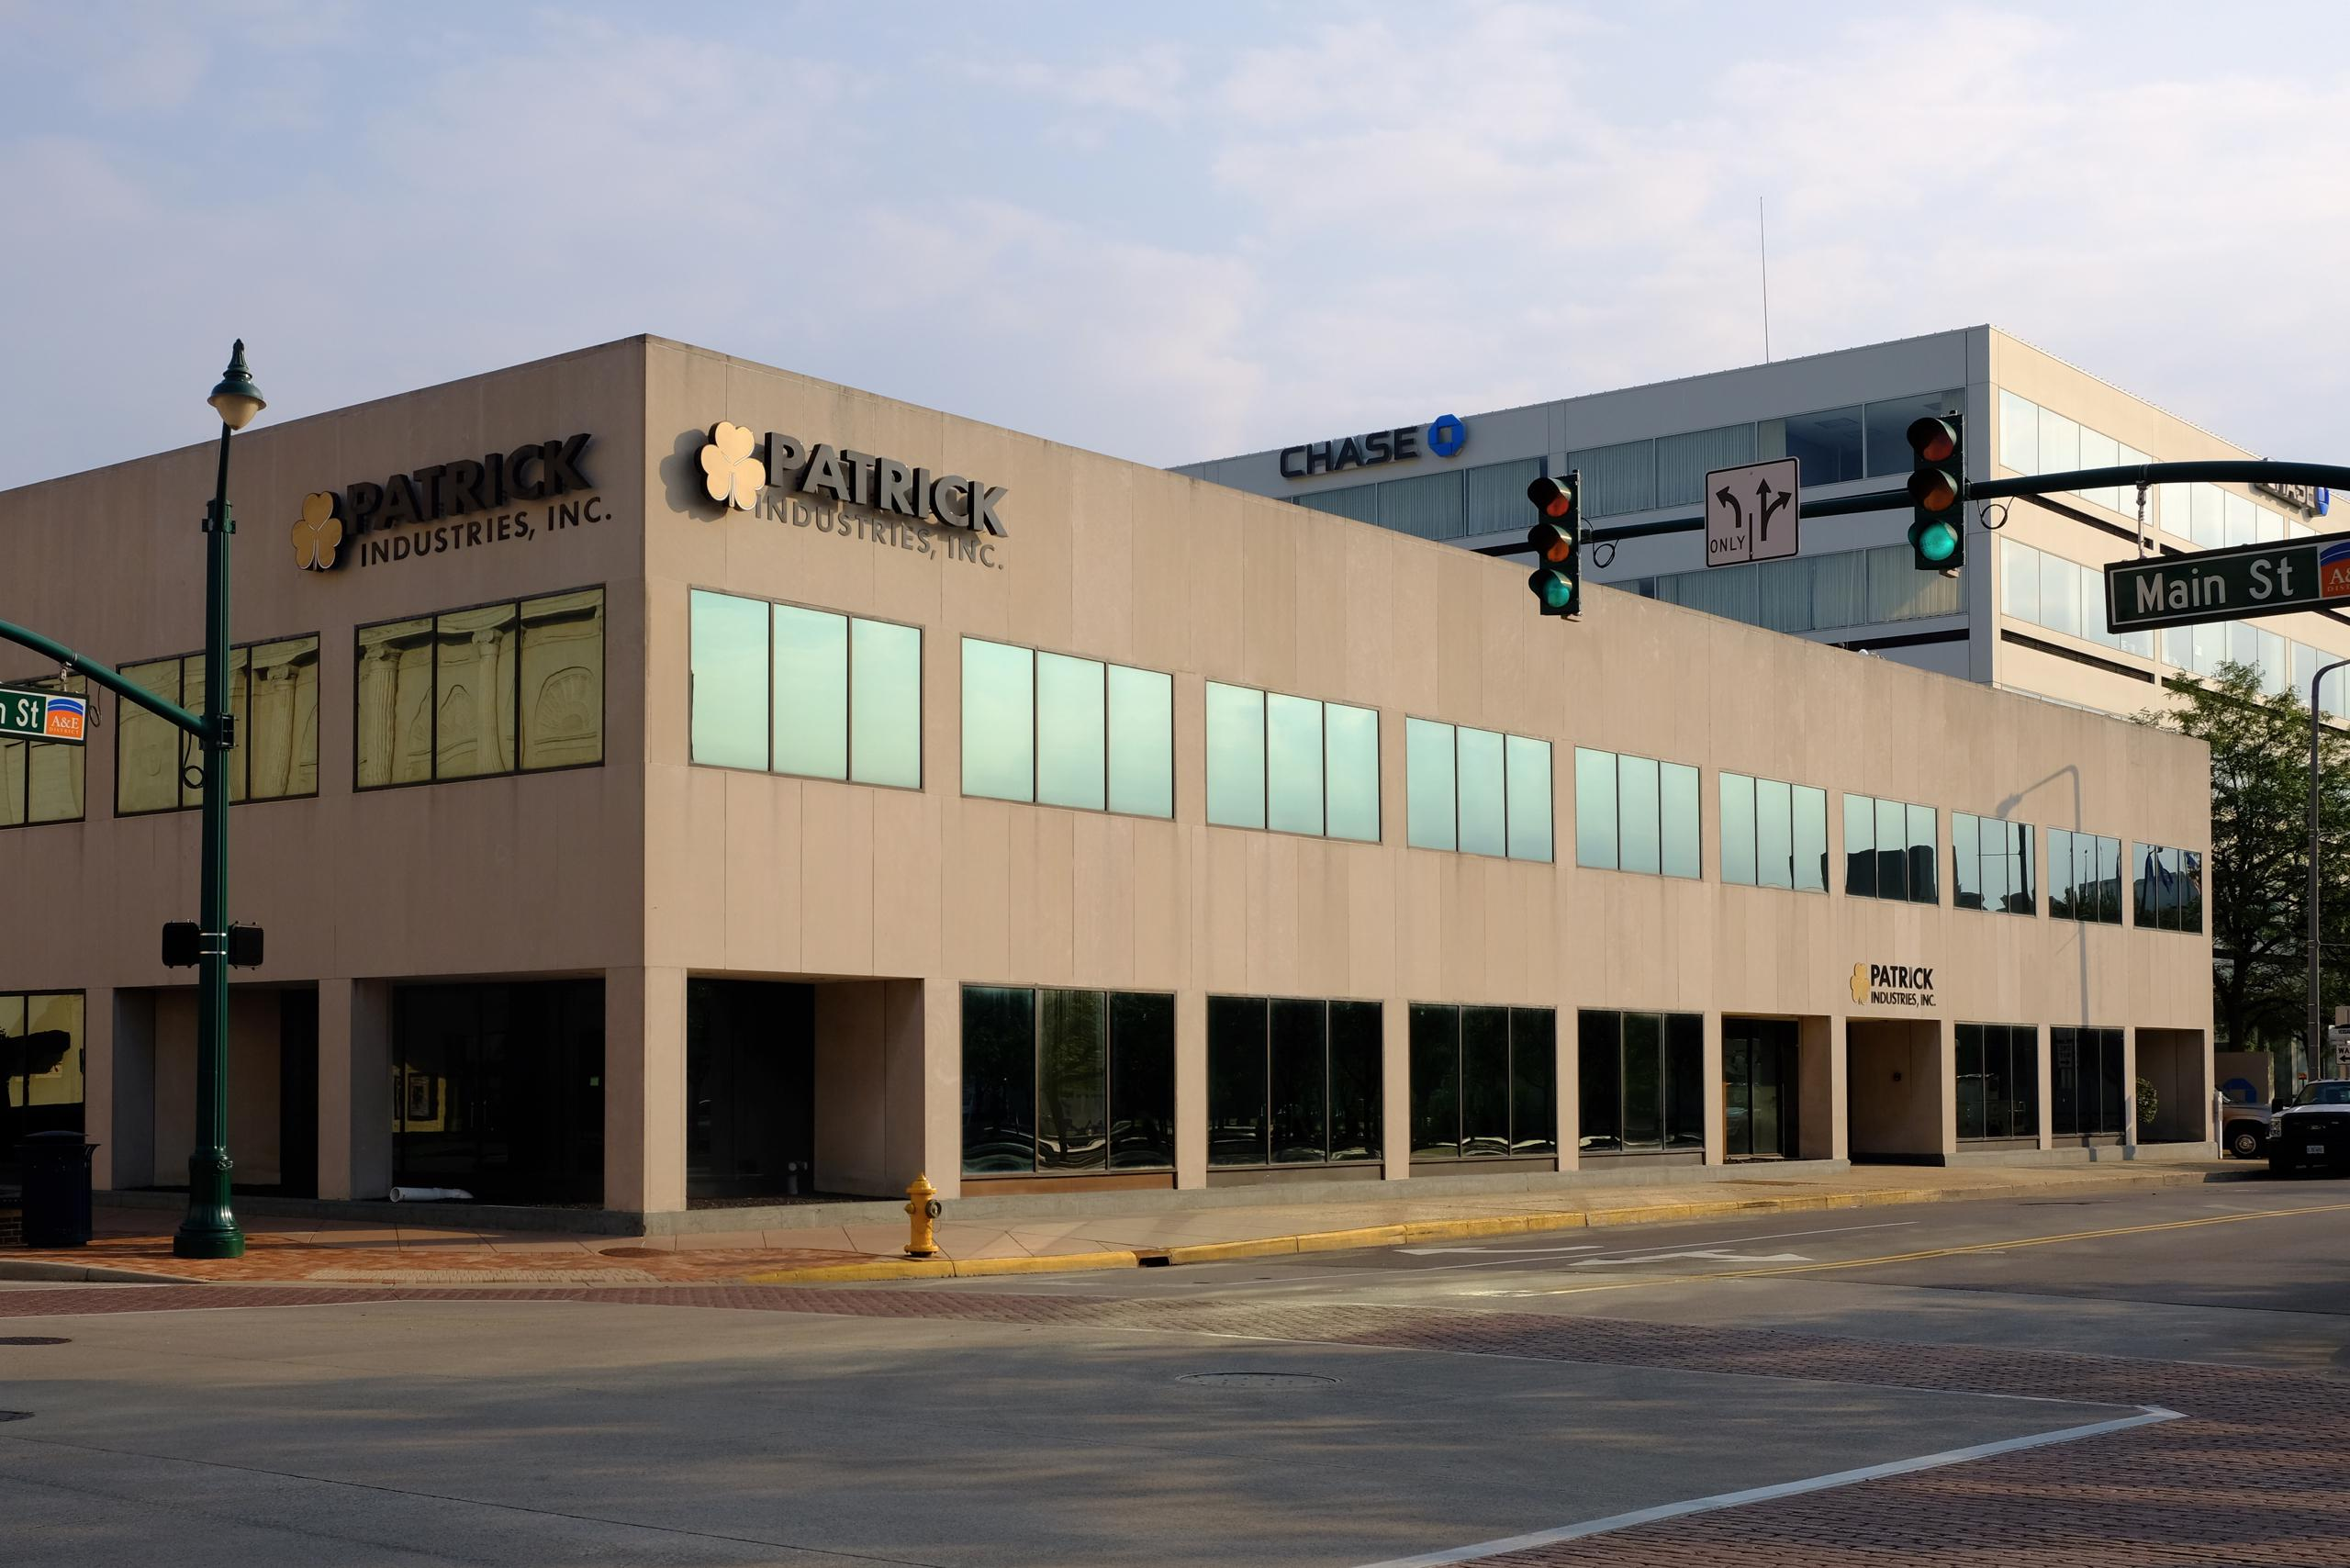 Patrick Industries' corporate headquarters in Elkhart, Indiana.